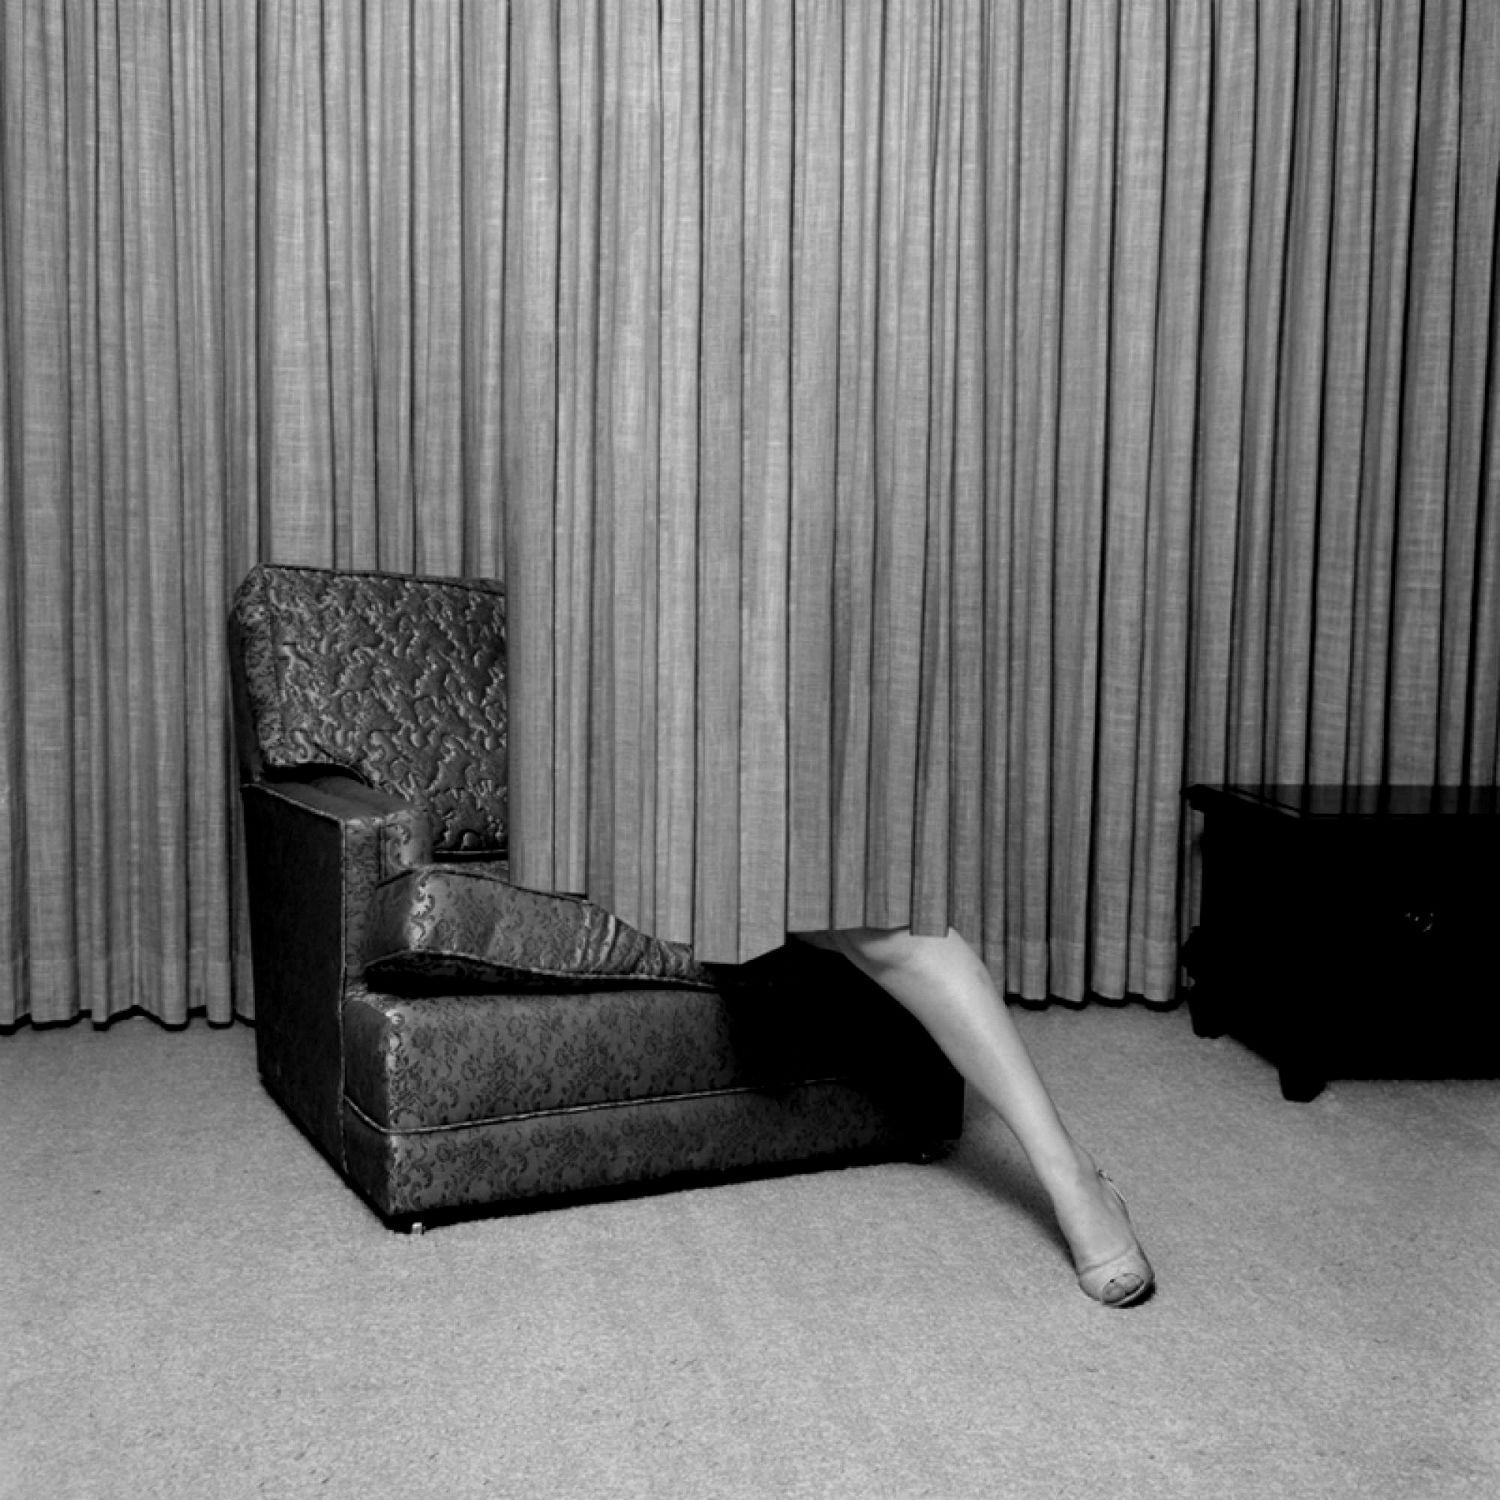 eva stenram photography illusions black white interior leg